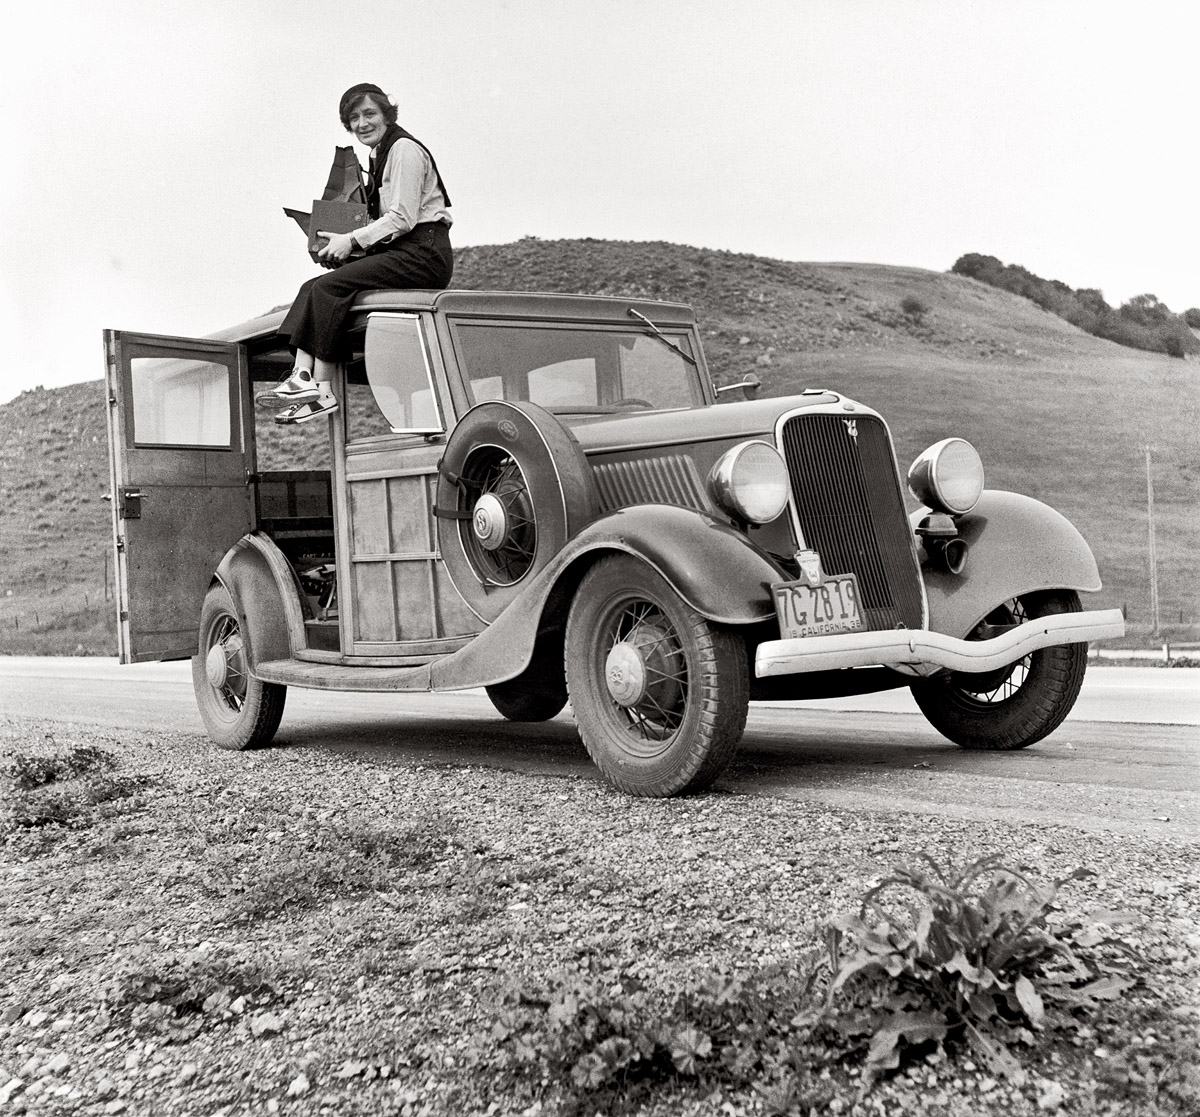 """From Shorpy.com: """"Dorothea Lange, Resettlement Administration photographer, in California atop car with her giant camera. February 1936. """""""